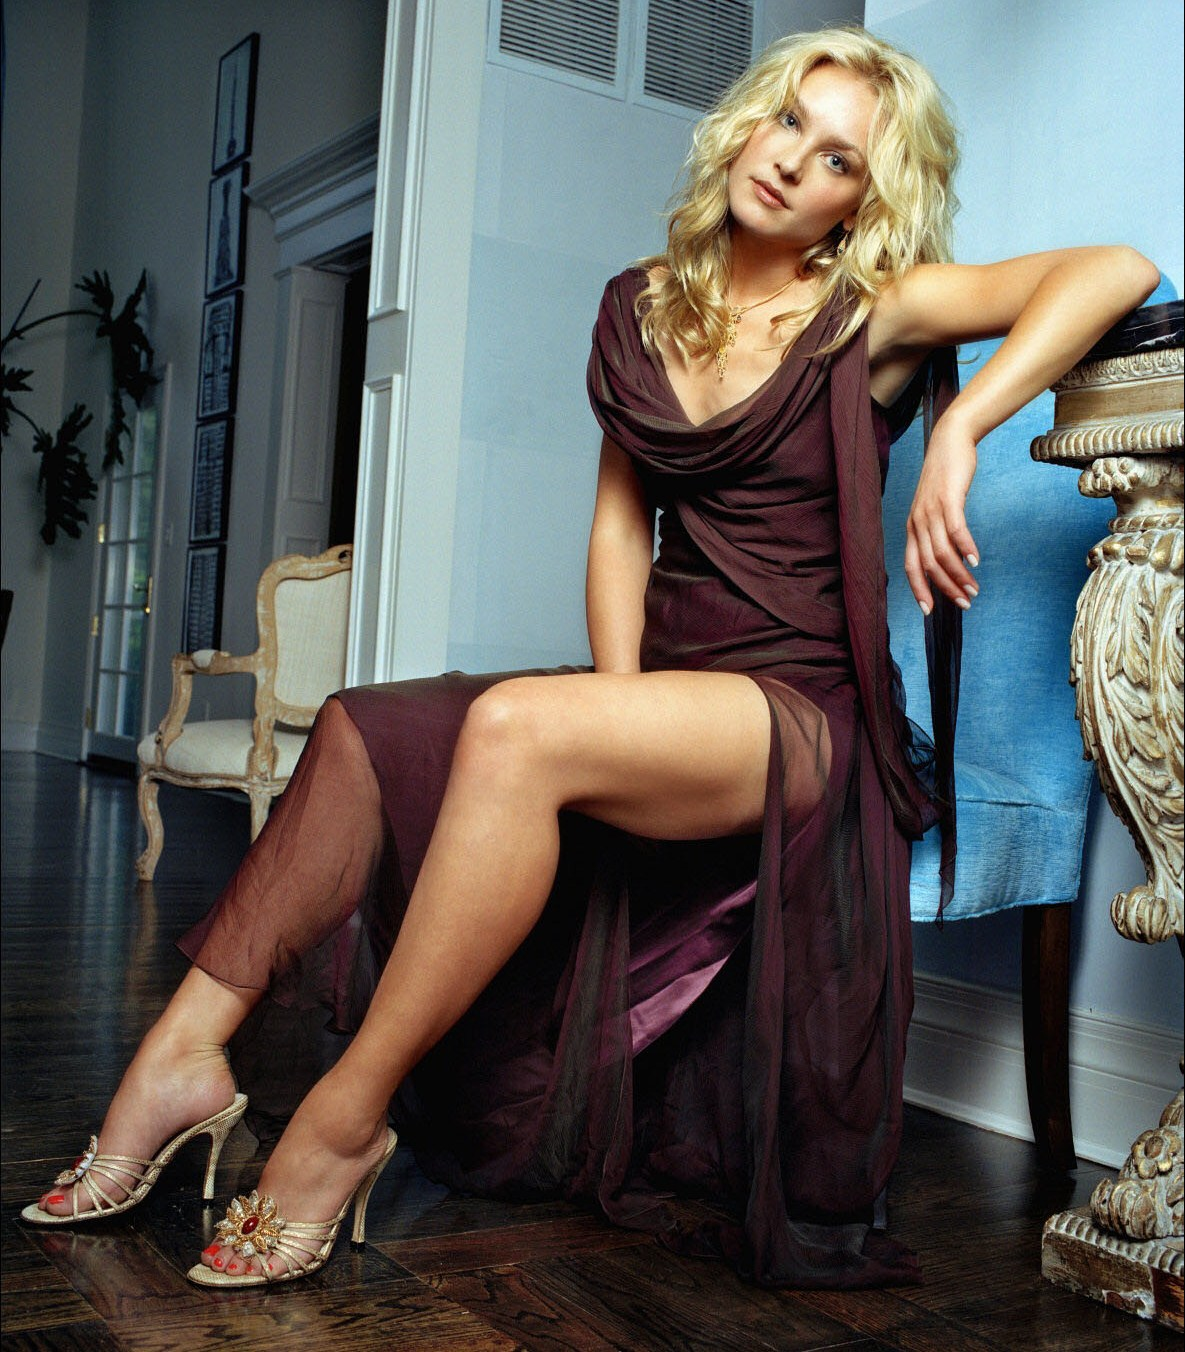 Selfie Swimsuit Veronica Sanchez  nude (61 images), Facebook, swimsuit